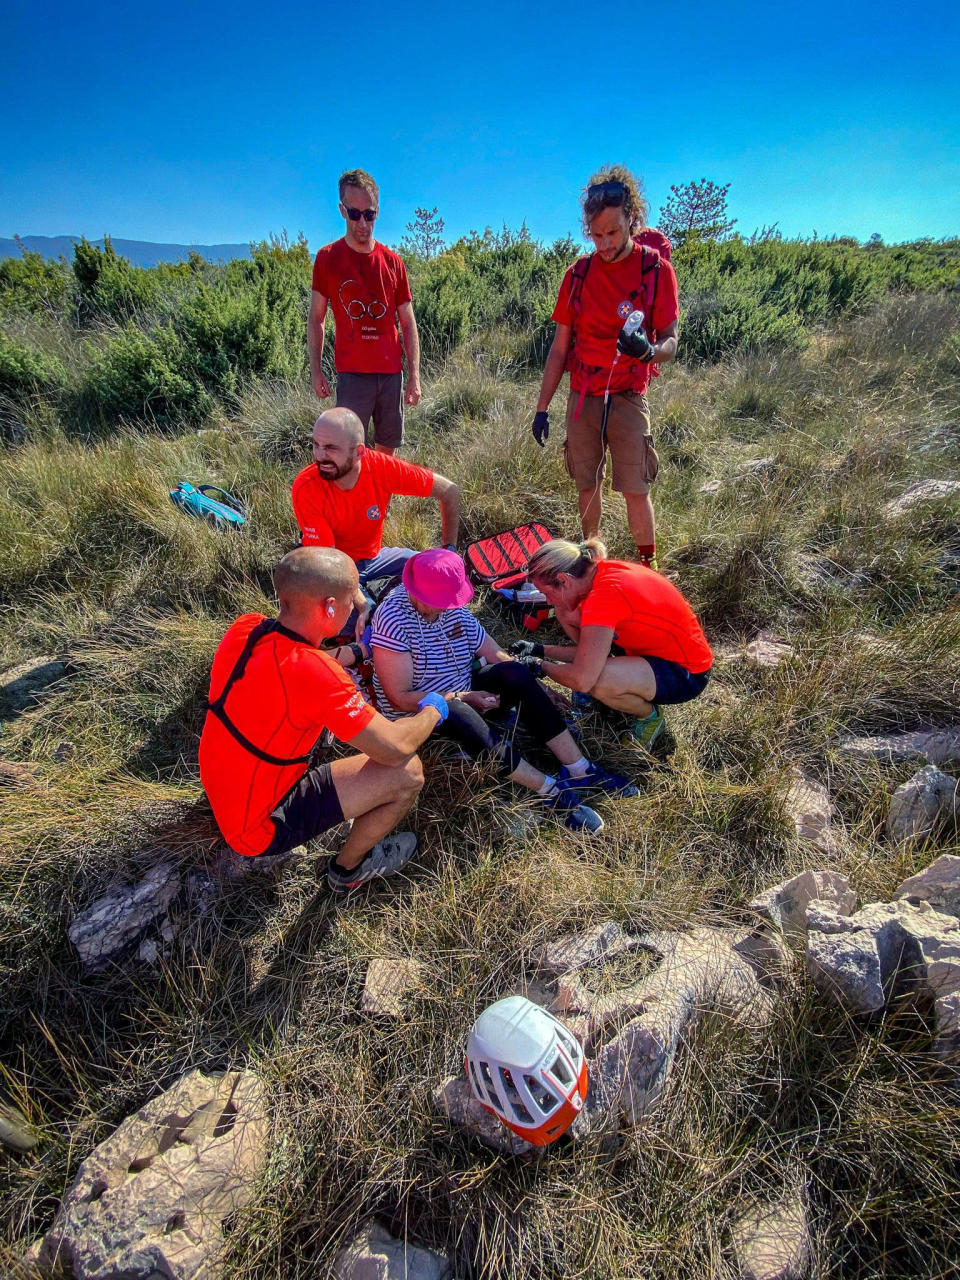 This photo provided by the Croatian Mountain Rescue Service, shows the rescue operation of an unidentified woman who was found on the Adriatic island of Krk on Sept. 12, 2021. Croatian police said Tuesday, Sept. 21, 2021 they are still working to establish the identity of a woman found over a week ago at a northern Adriatic Sea island with no recollection of who she is or where she came from. Police told the Associated Press they are searching the terrain and conducting numerous interviews with residents and tourists or anyone who has information about the woman discovered on the island of Krk on Sept. 12. (Croatian Mountain Rescue Service via AP)